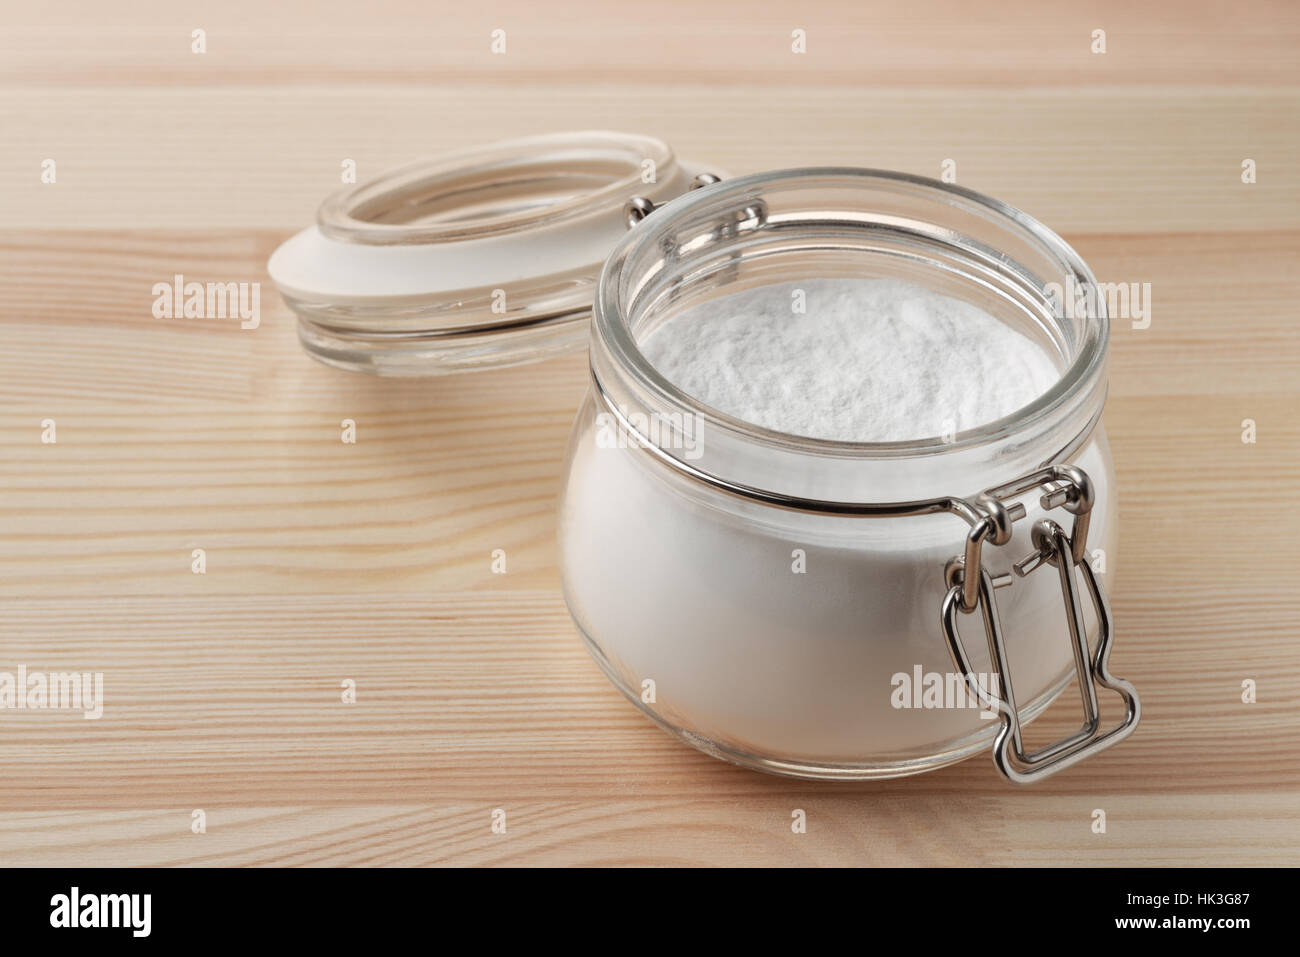 Open glass jar of baking soda on wooden background - Stock Image